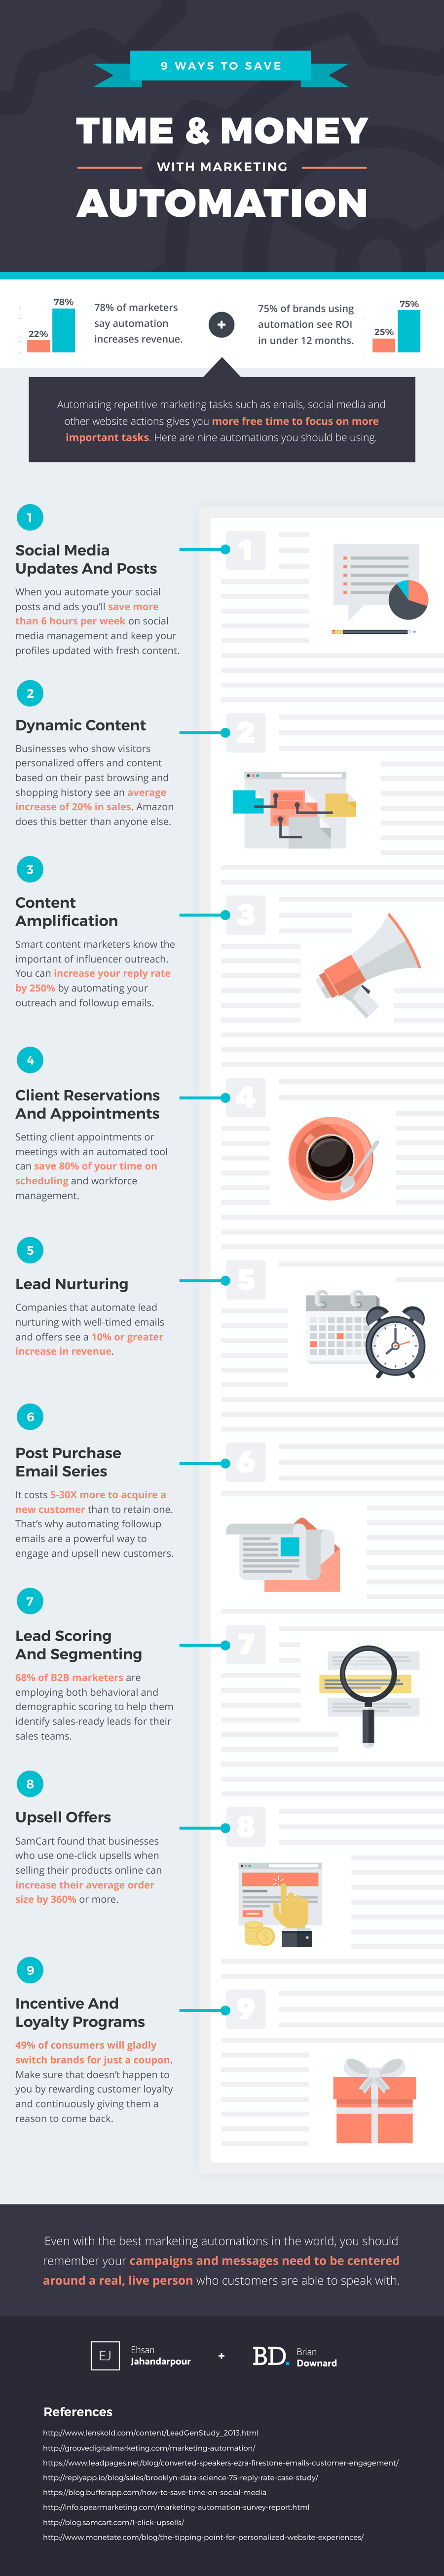 Infographic – 9 Ways to Save Time and Money With Marketing Automation